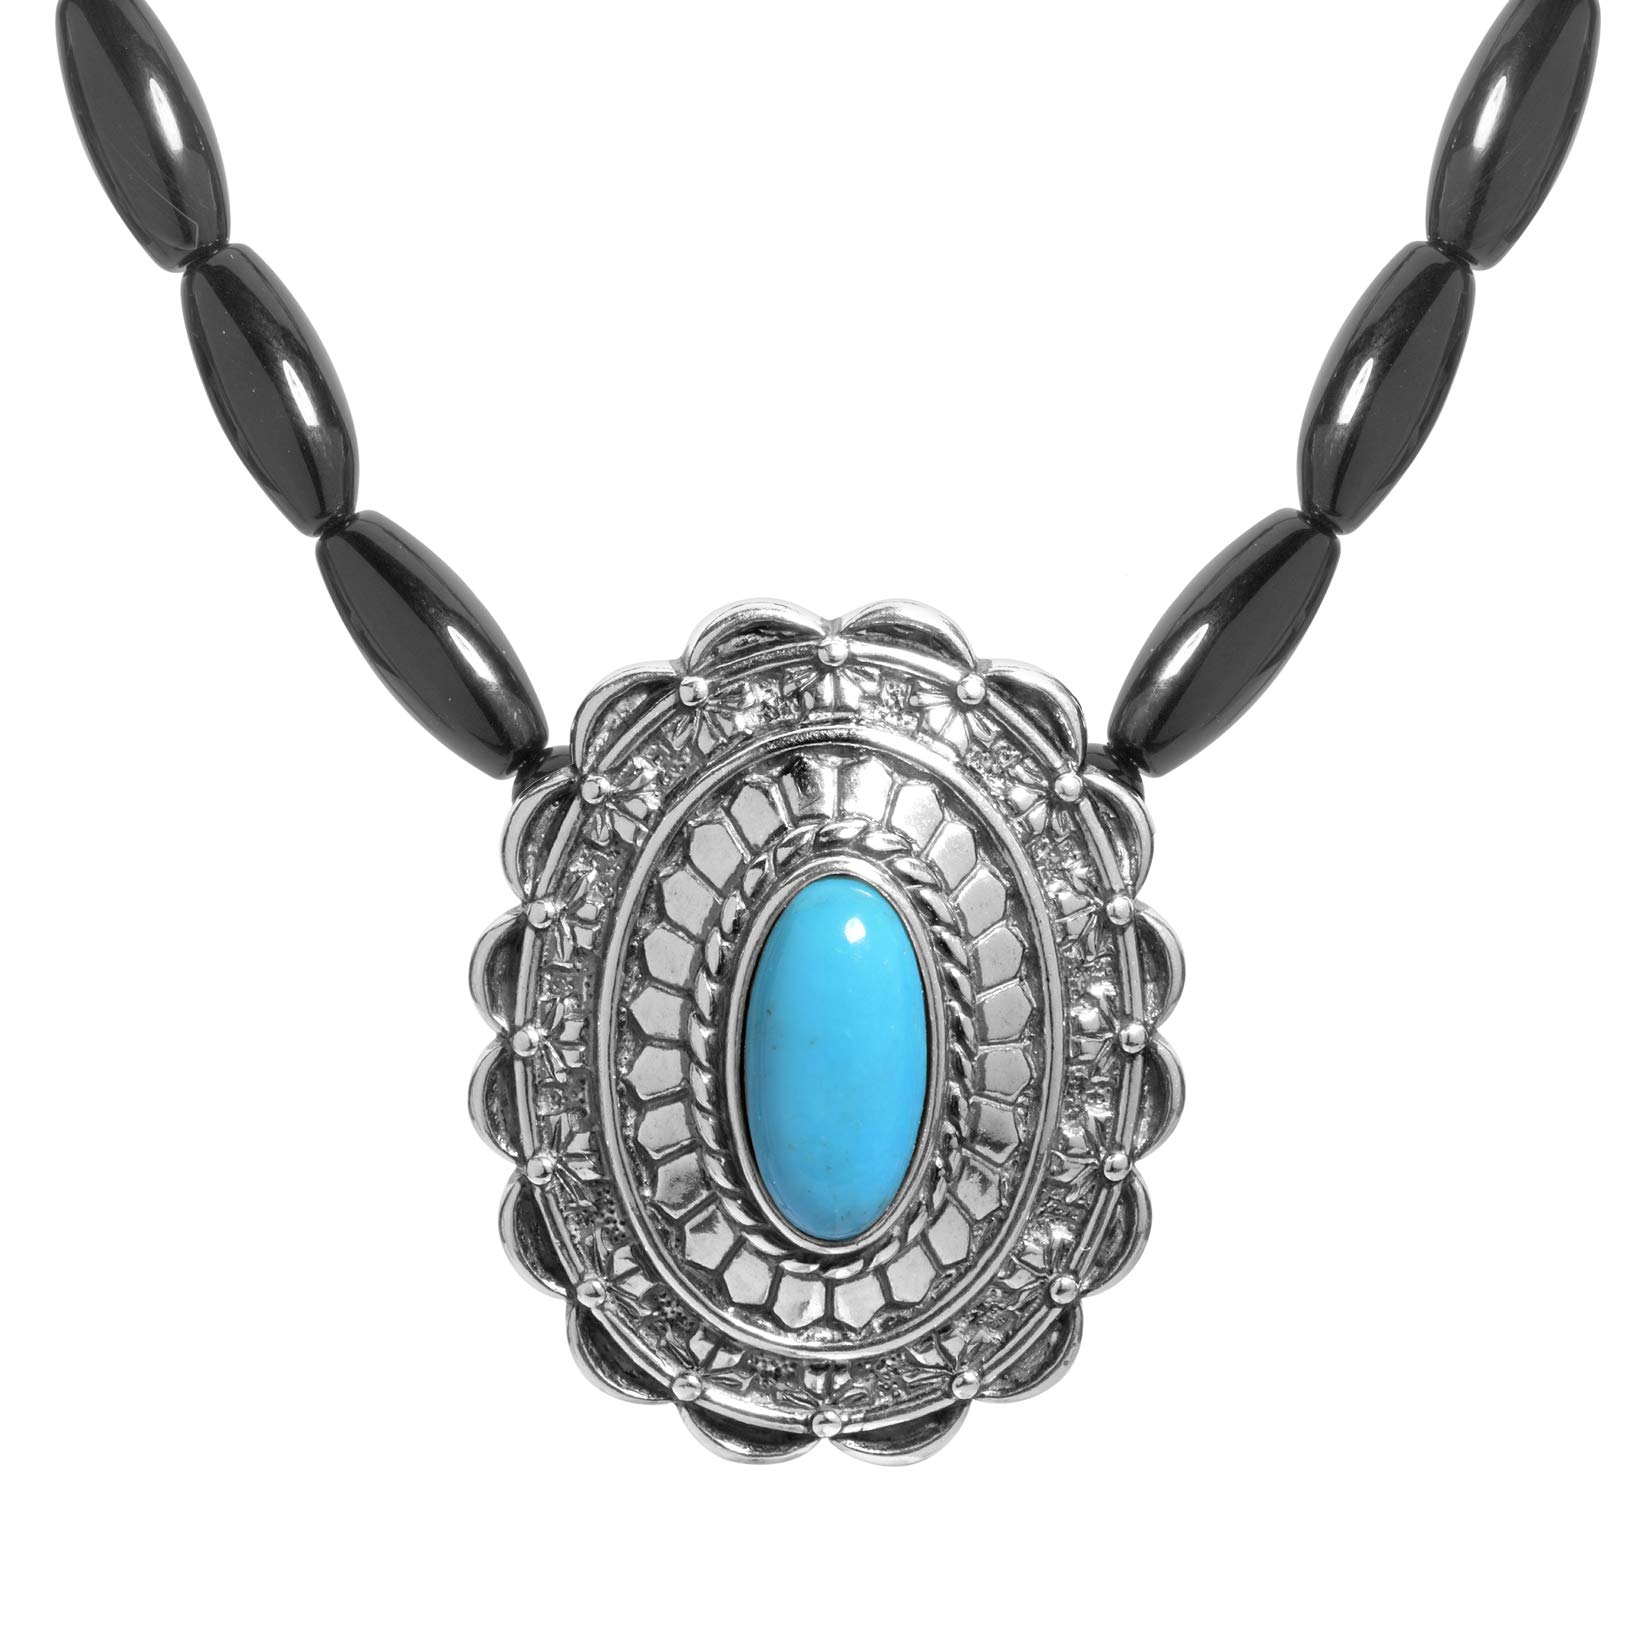 .925 Sterling Silver Turquoise Medal Necklace on Black Agate Necklace